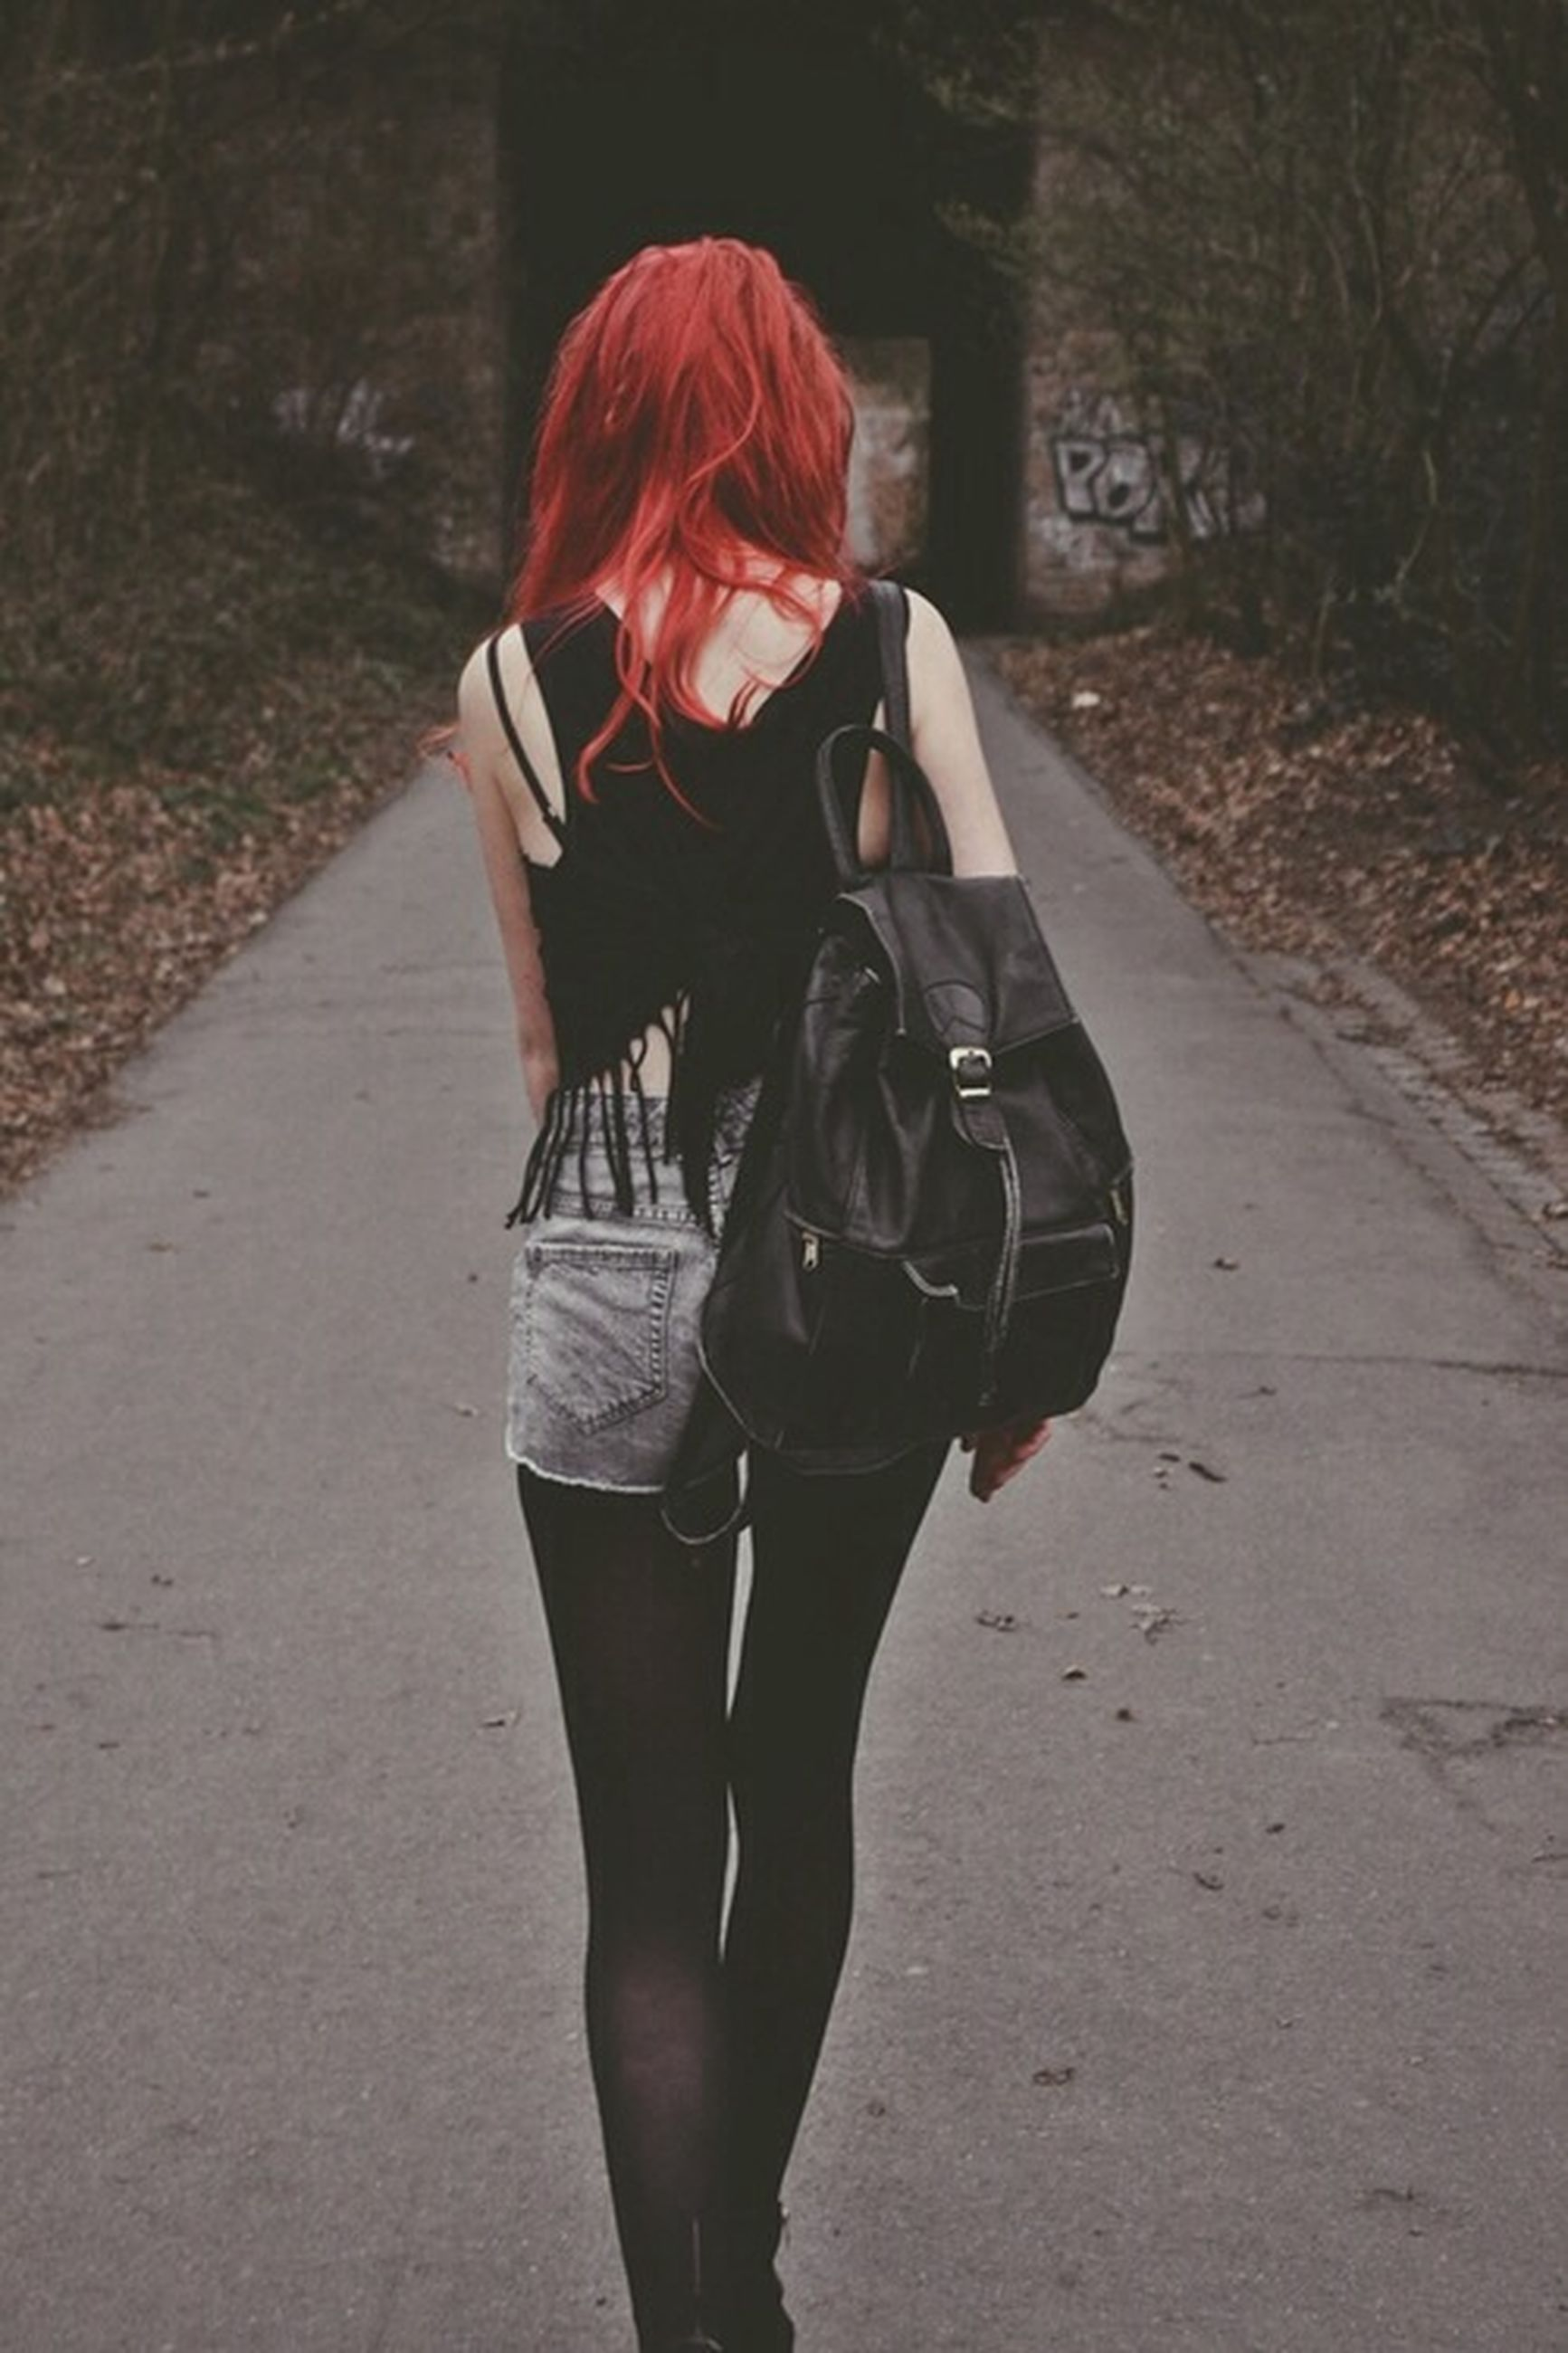 lifestyles, full length, casual clothing, leisure activity, rear view, standing, walking, young adult, person, road, young women, street, front view, backpack, holding, warm clothing, three quarter length